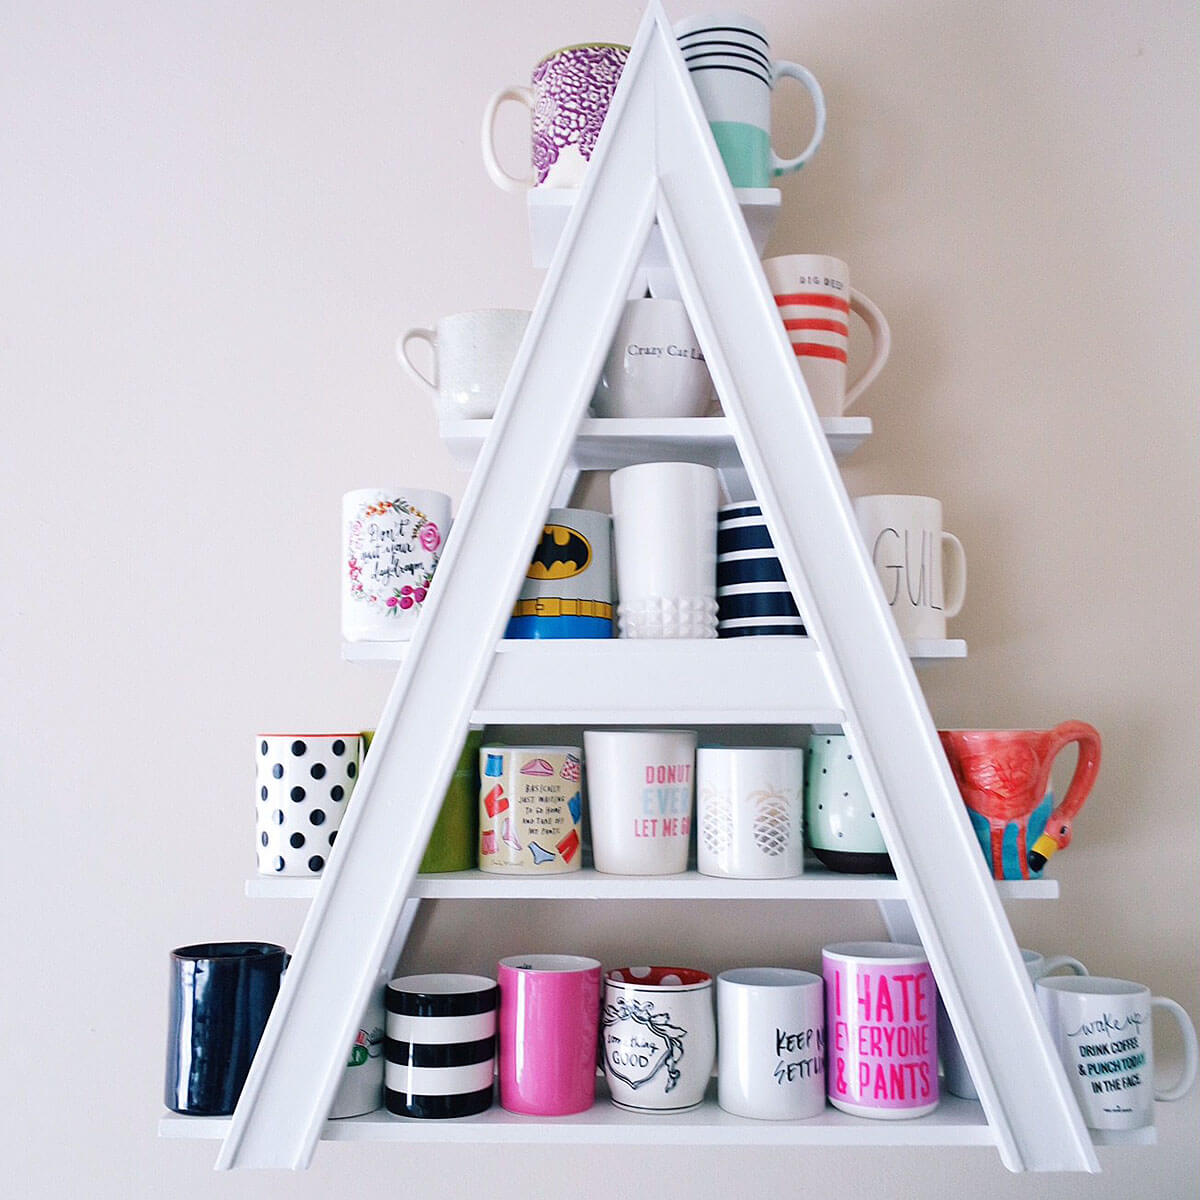 A-frame Mug Shelves